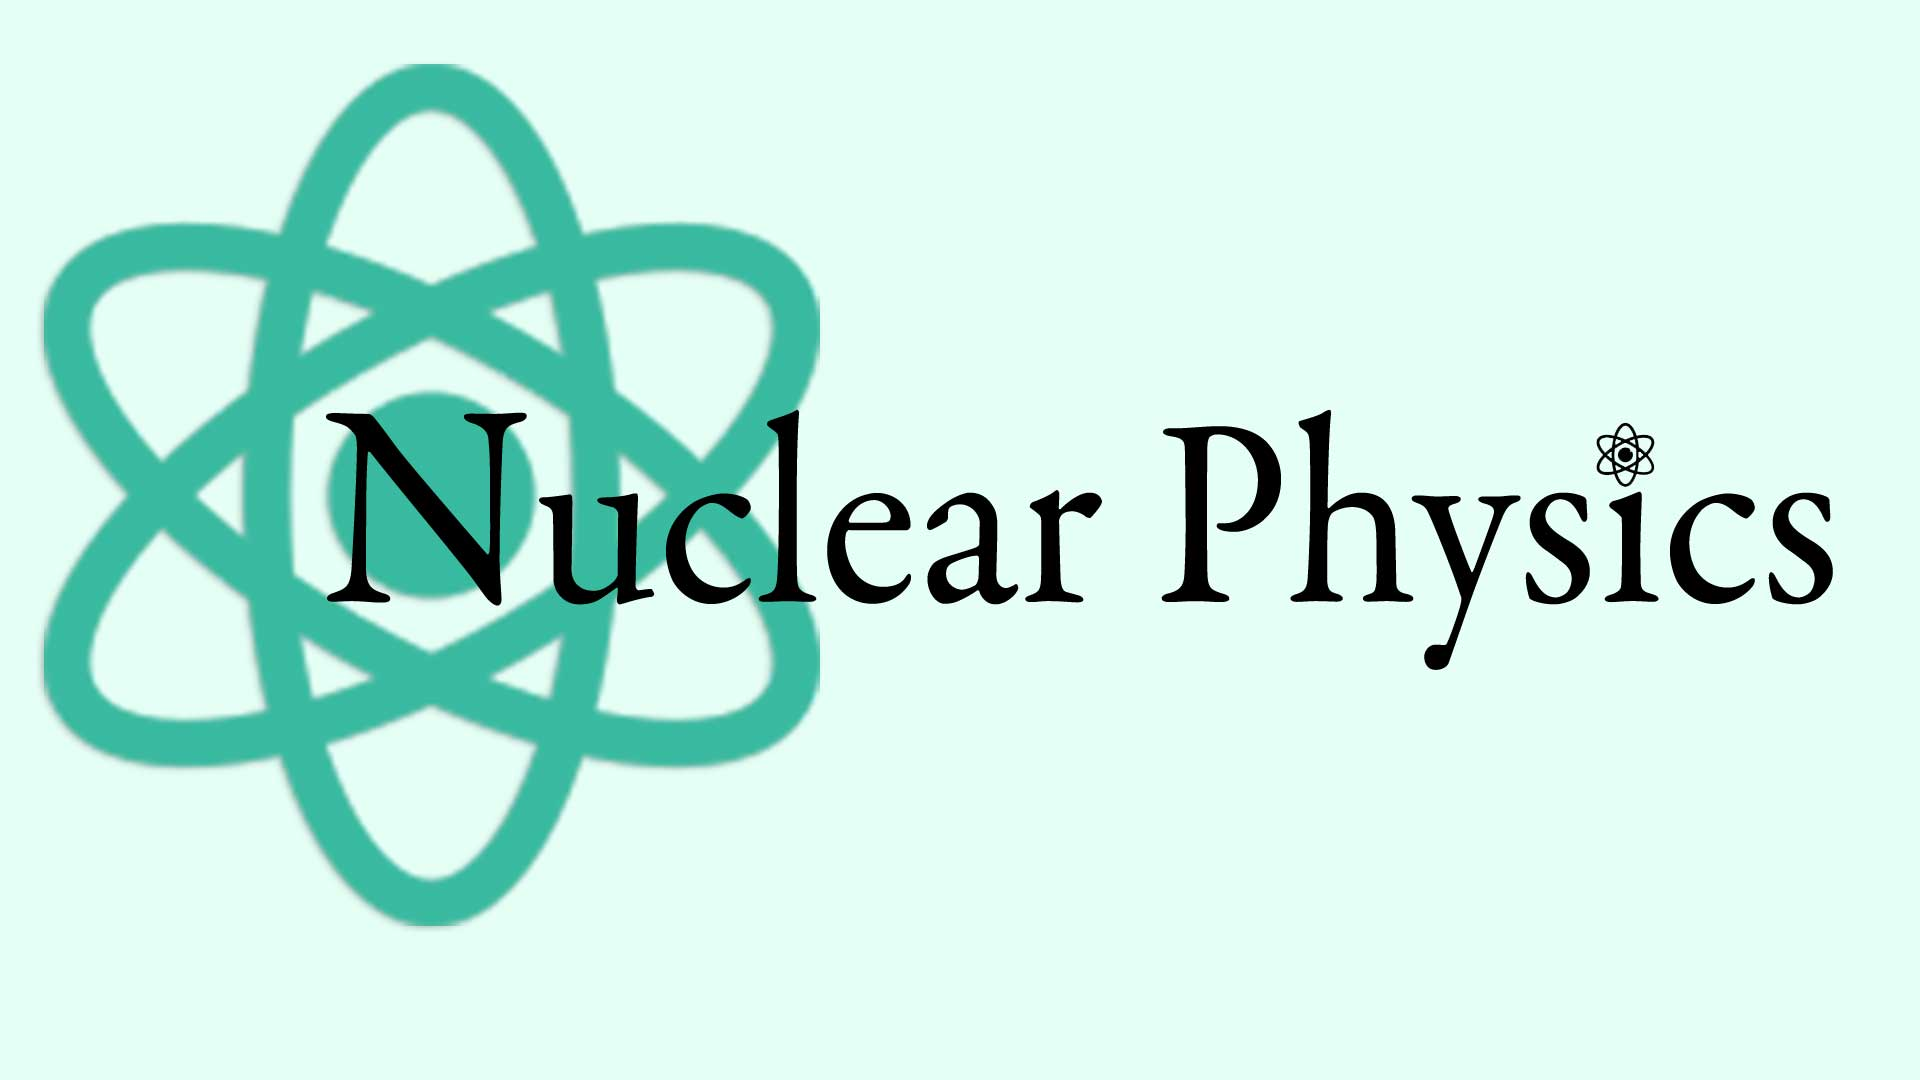 Nuclear Physics Graphic with Atom